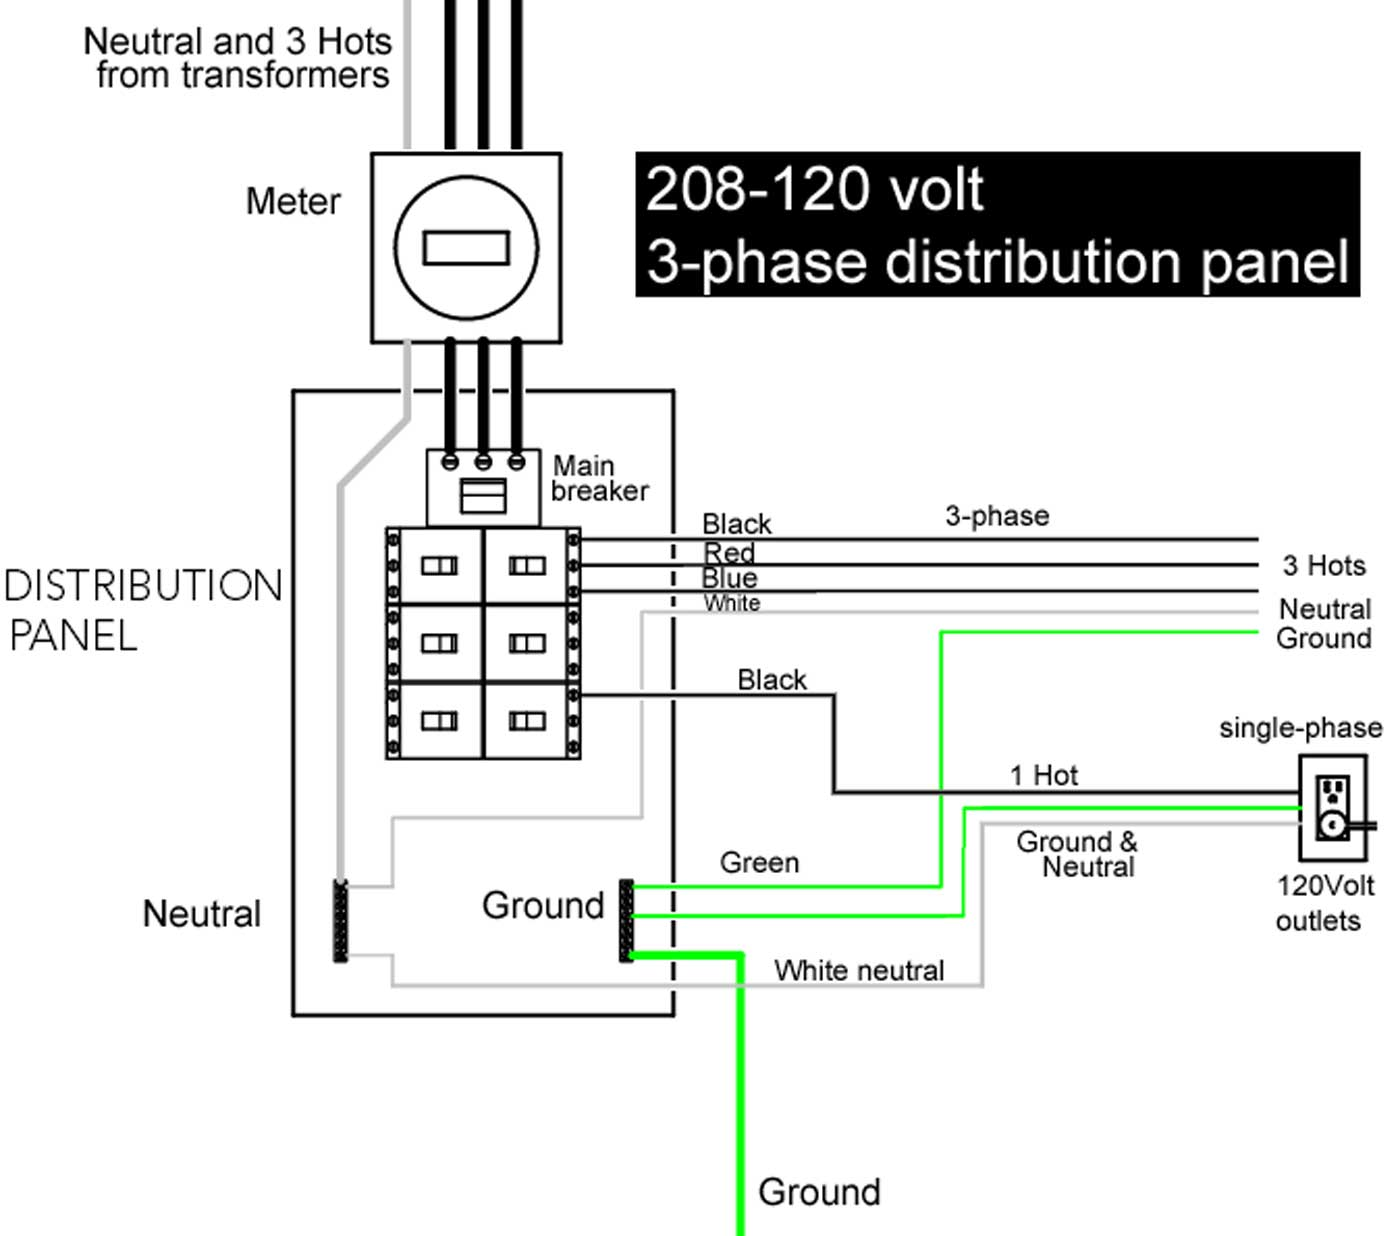 how to wire 3 phase shows 120 208 volt service 4 wire 3 hot wires and 1 neutral enter meter box 3 hot wires and 1 neutral enter distribution panel and connect to main breaker